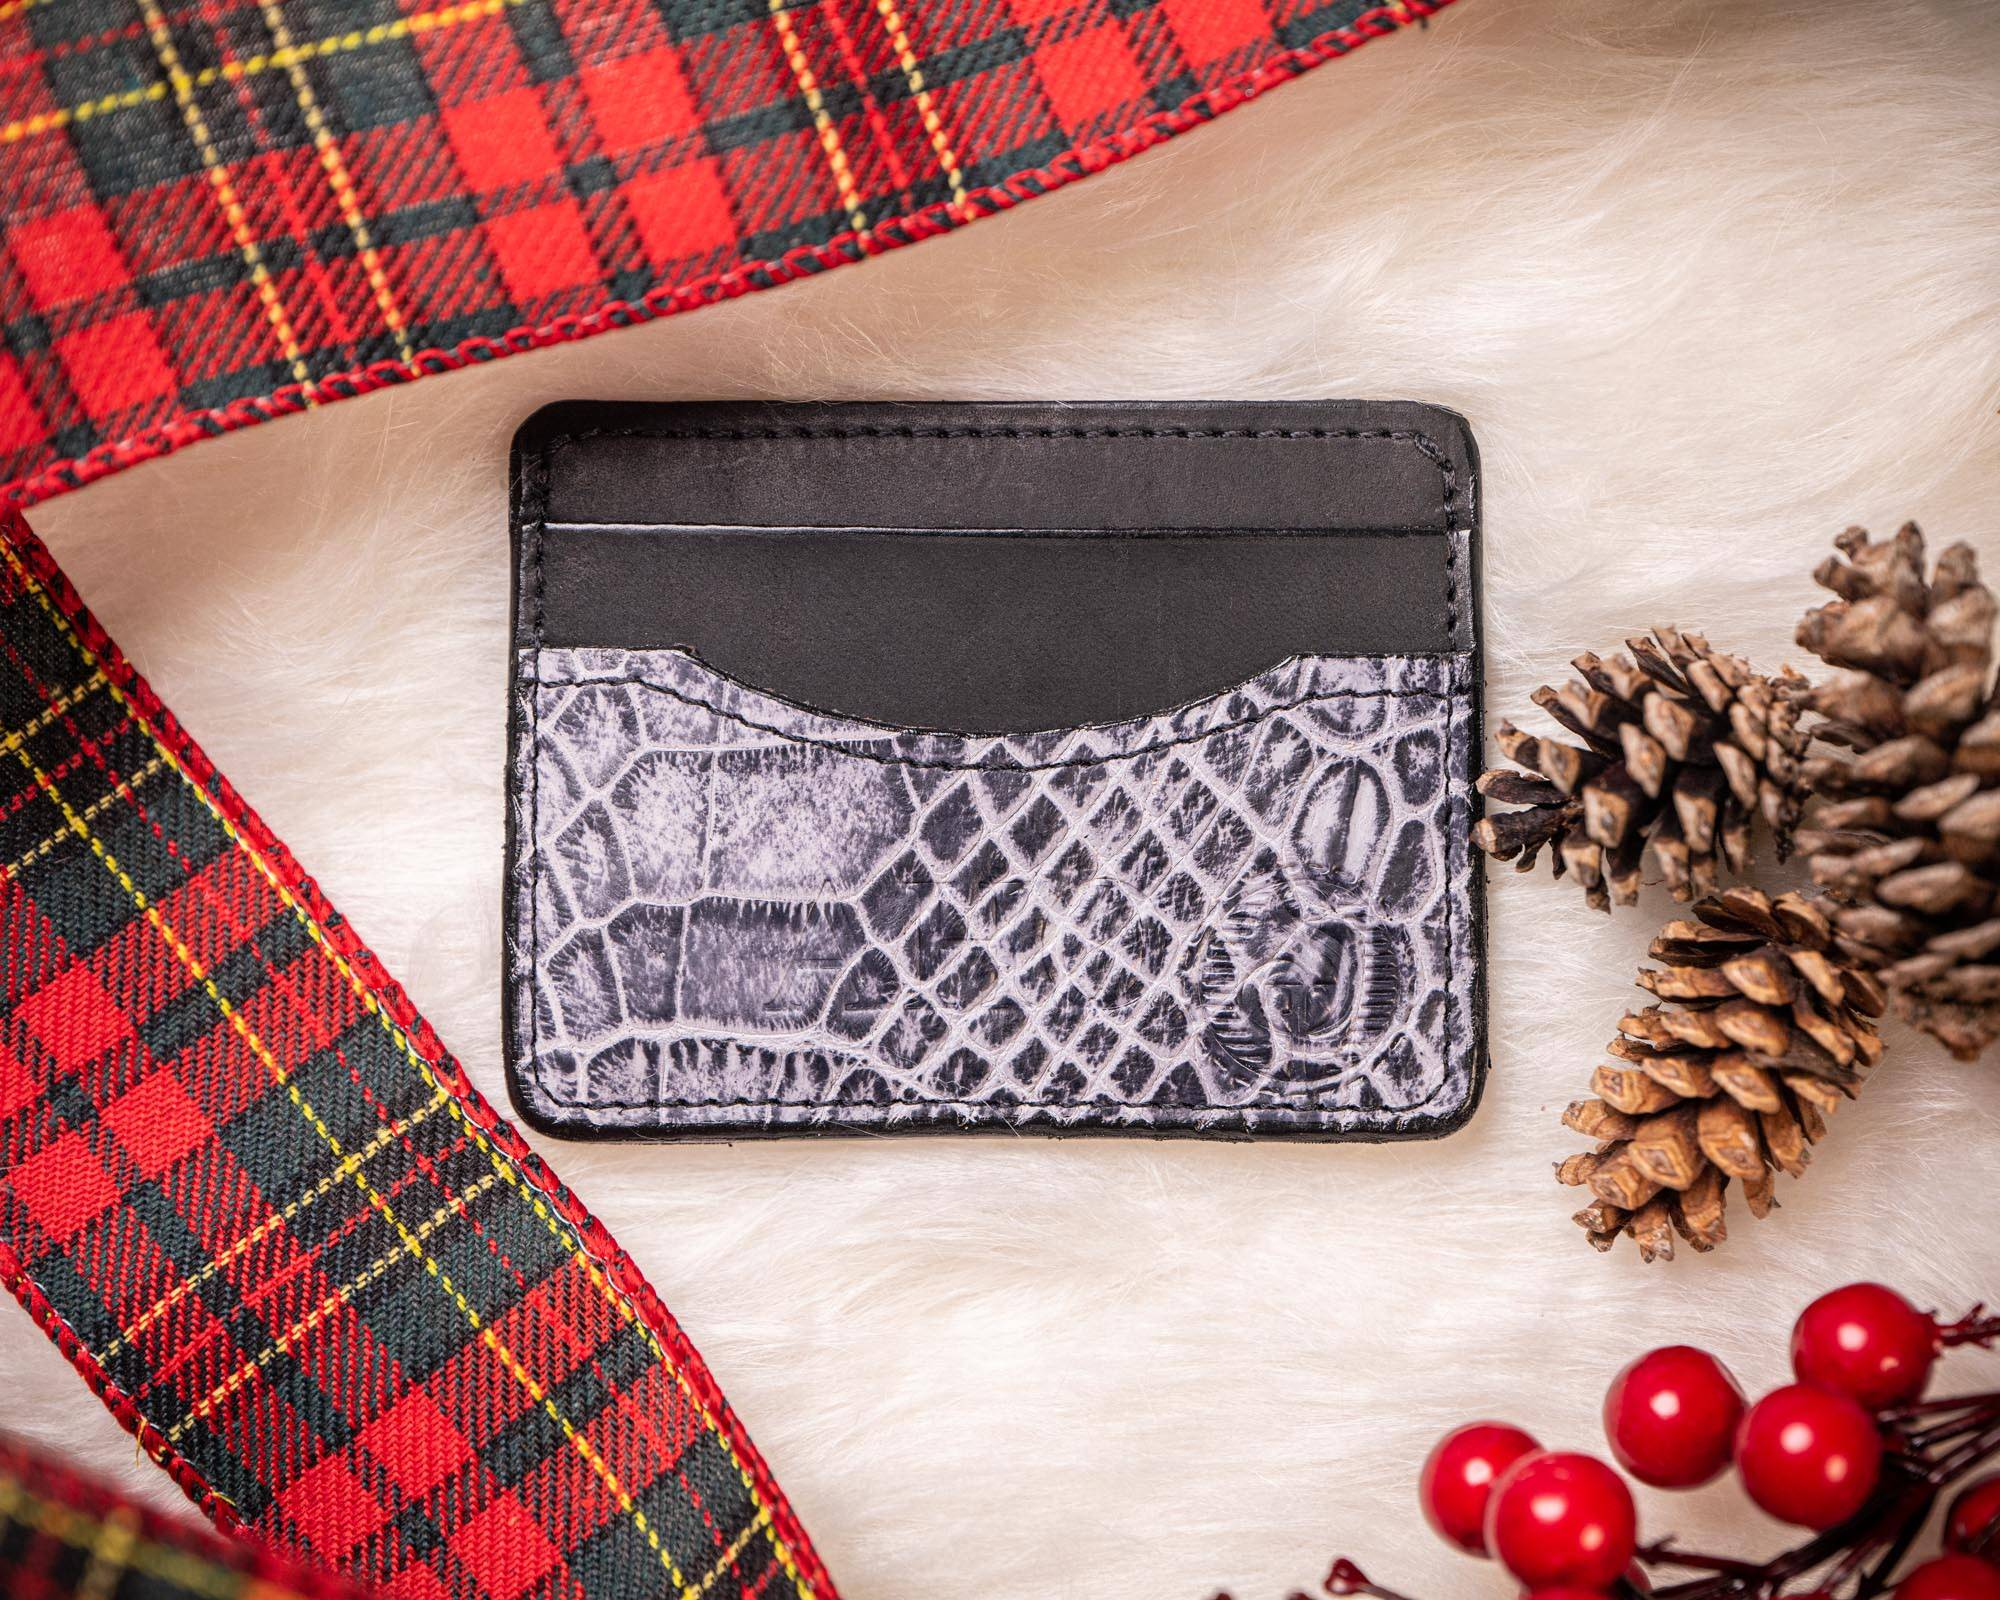 alligator wallet for men